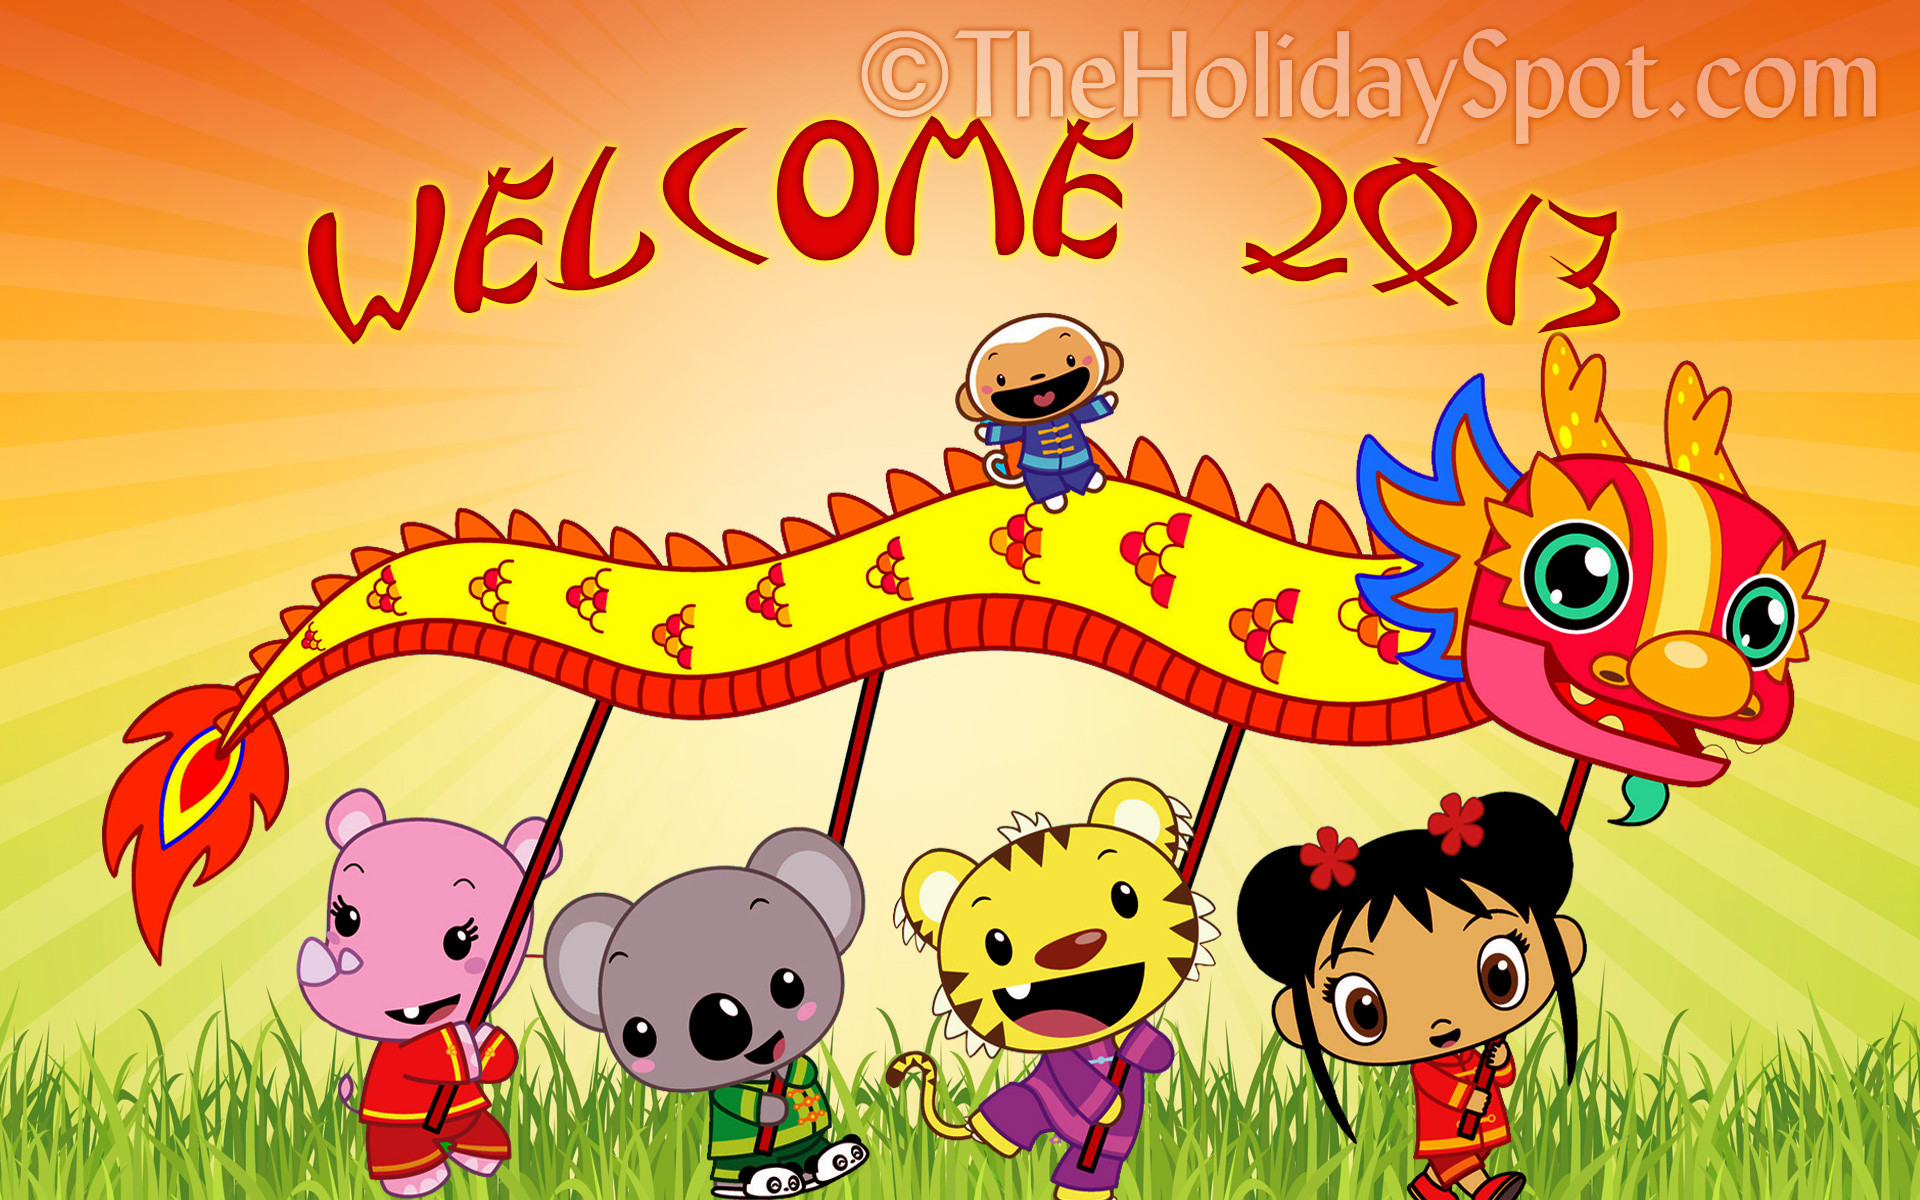 1920x1200 Download Free Christmas New Year Wallpaper. download original size